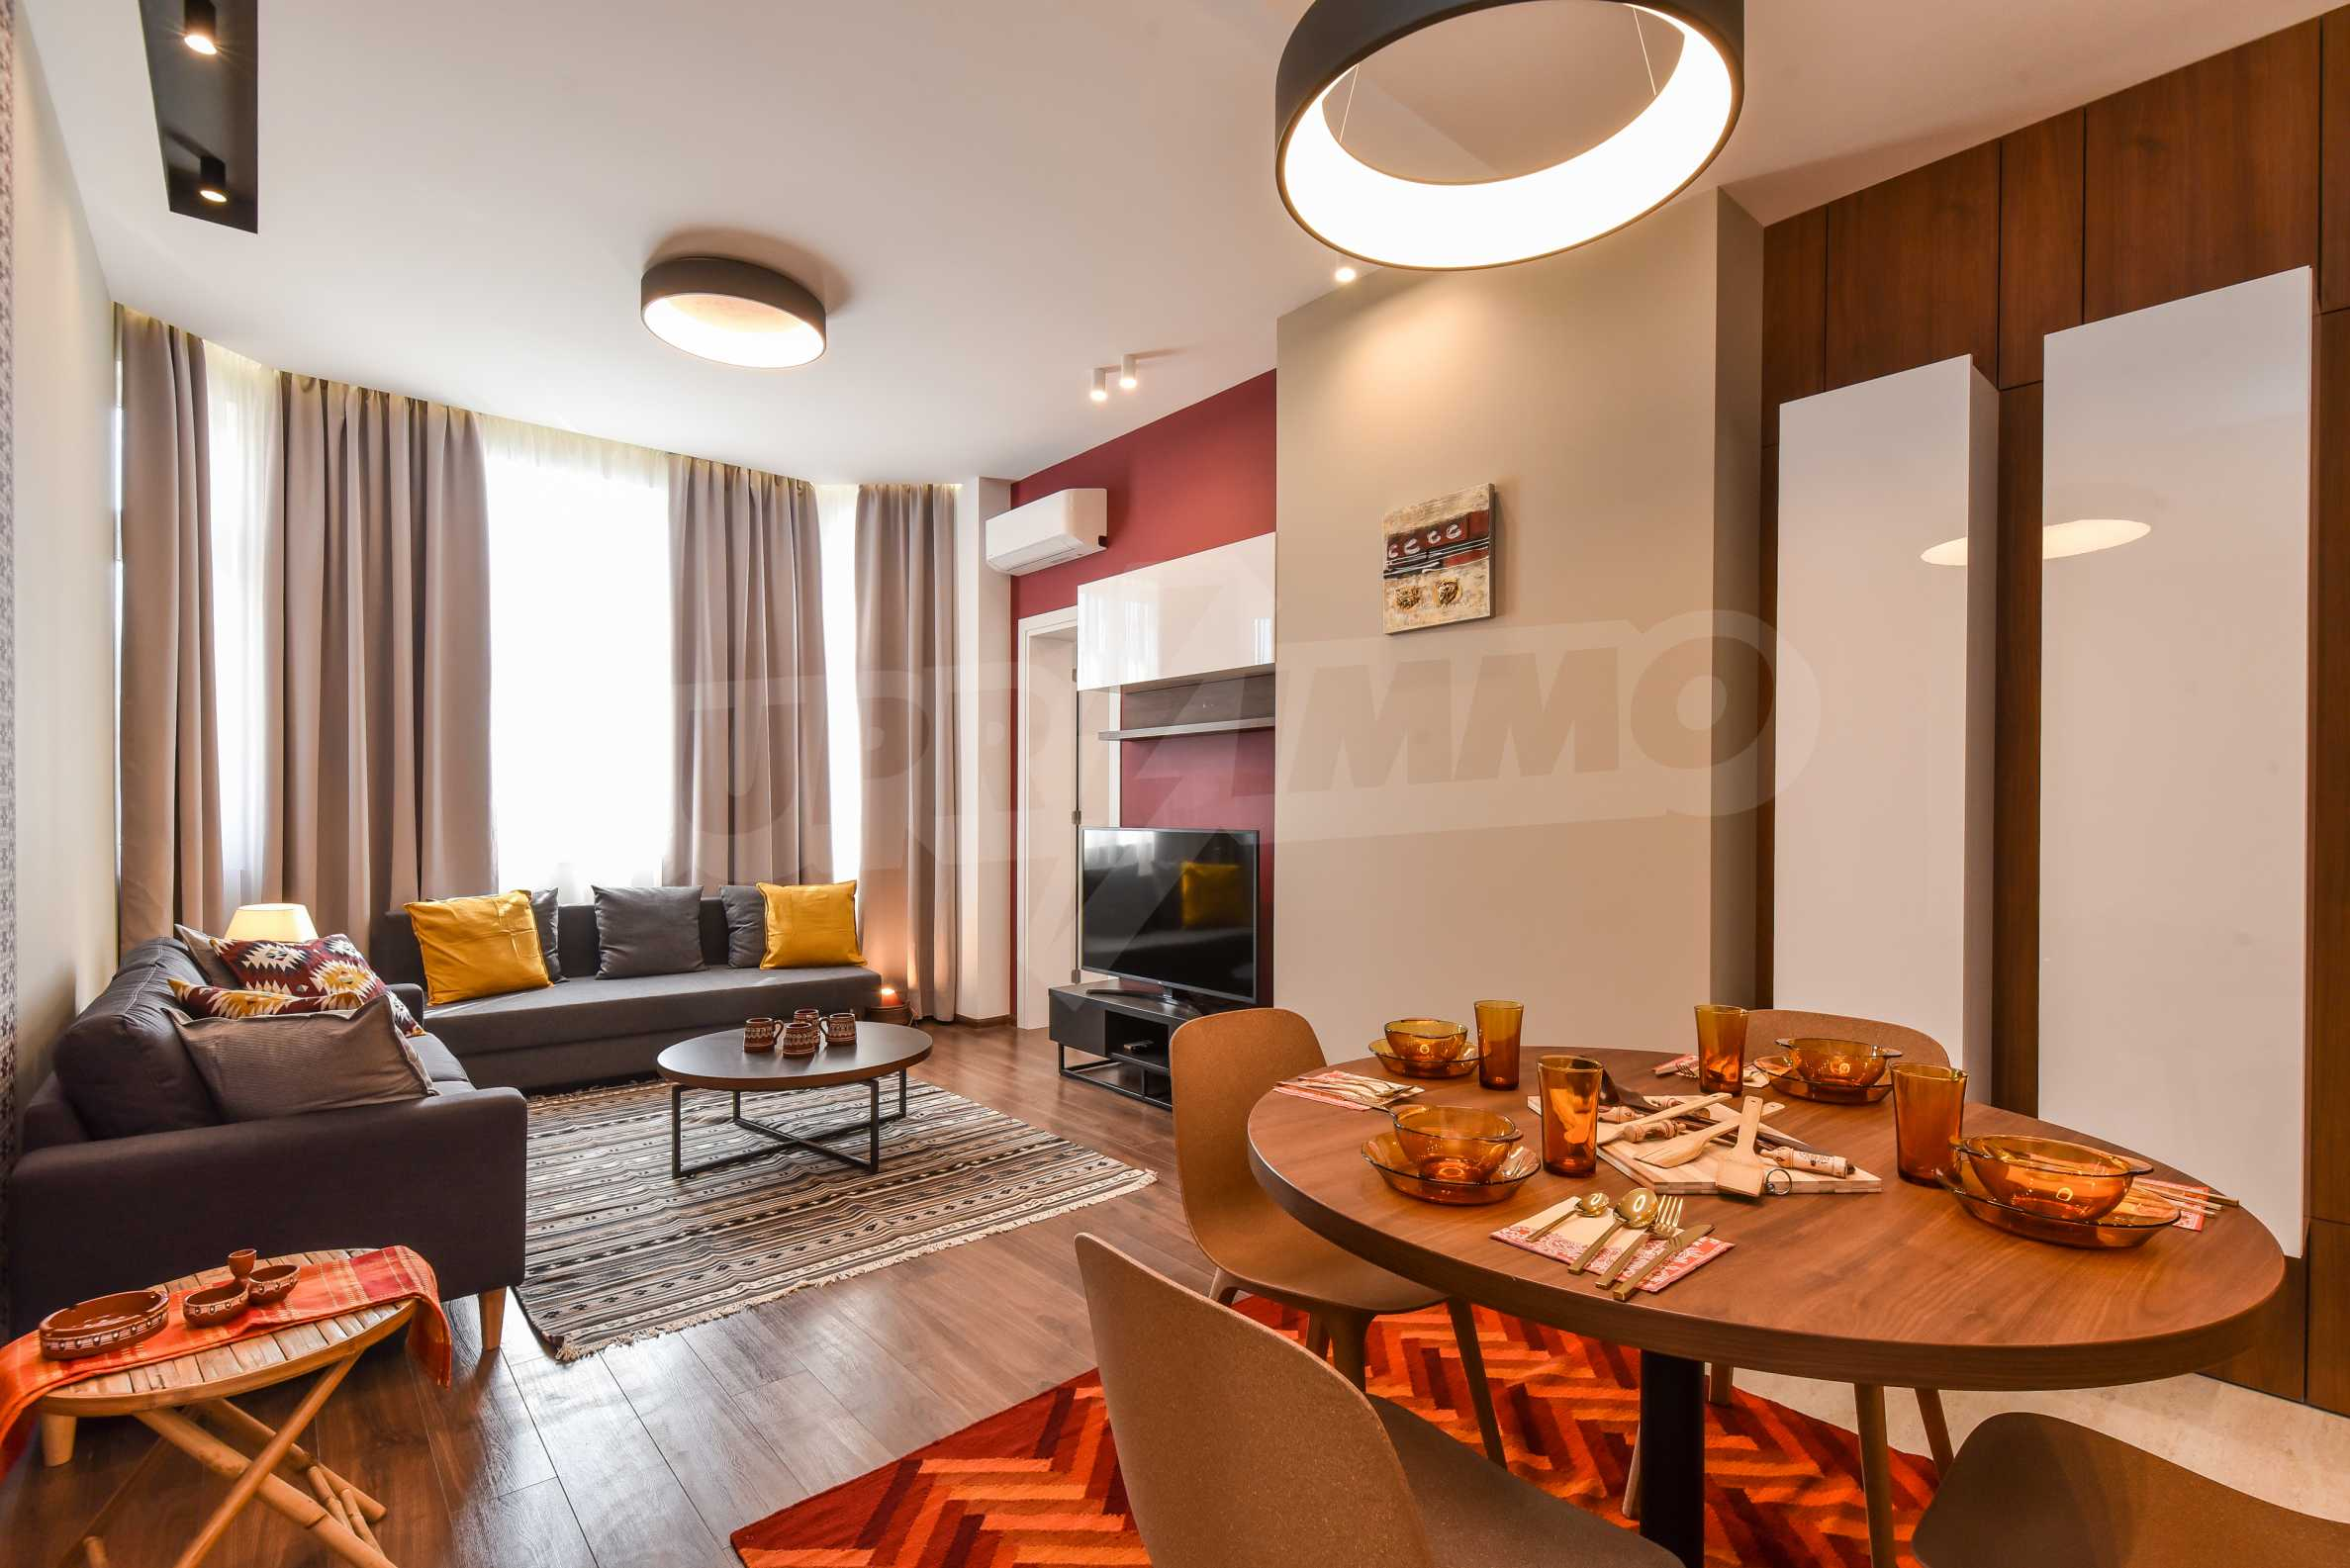 Modern three bedroom apartment with working business in the center of Sofia 1